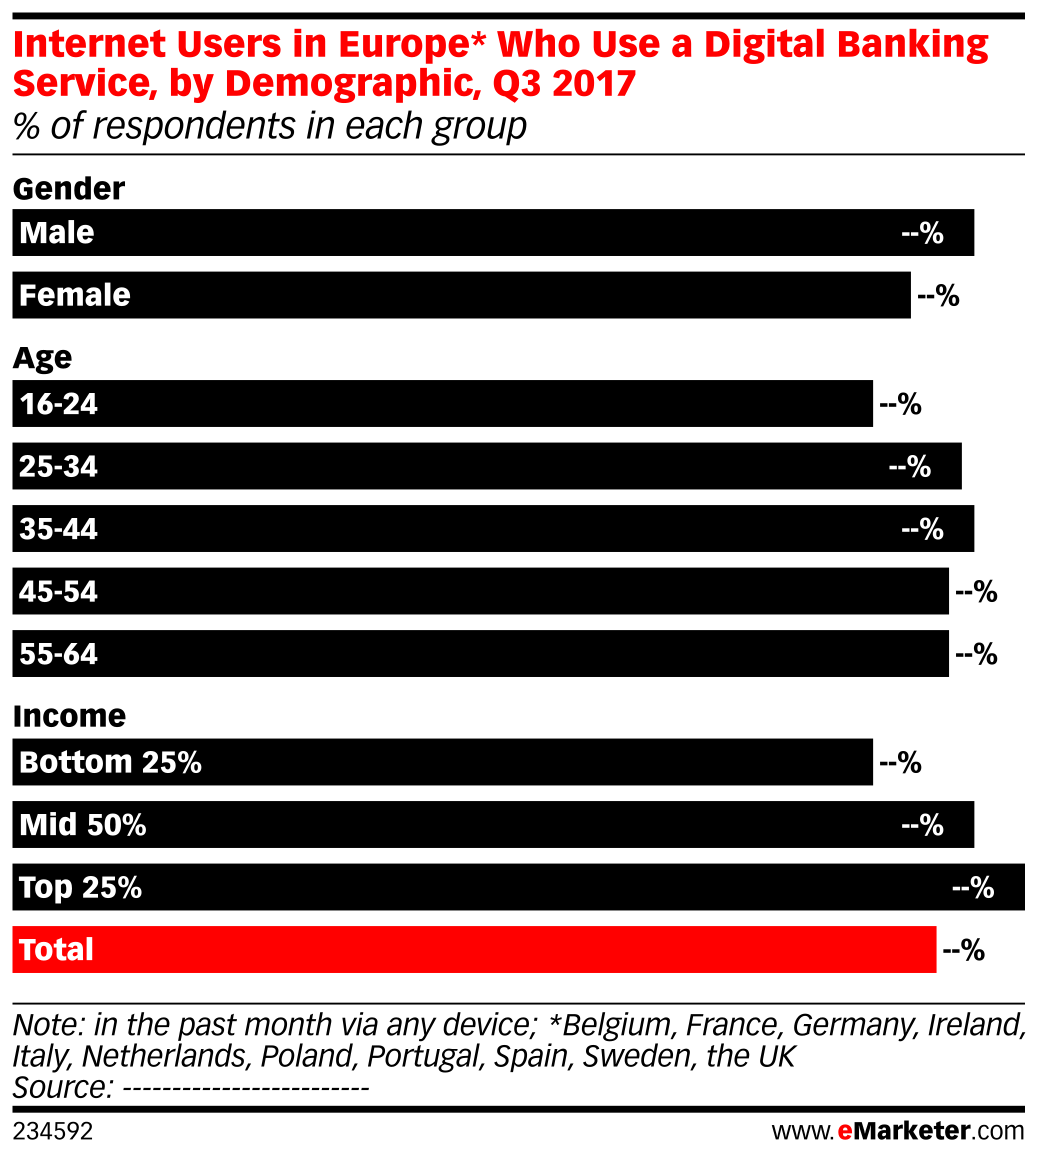 Internet Users in Europe* Who Use a Digital Banking Service, by Demographic, Q3 2017 (% of respondents in each group)